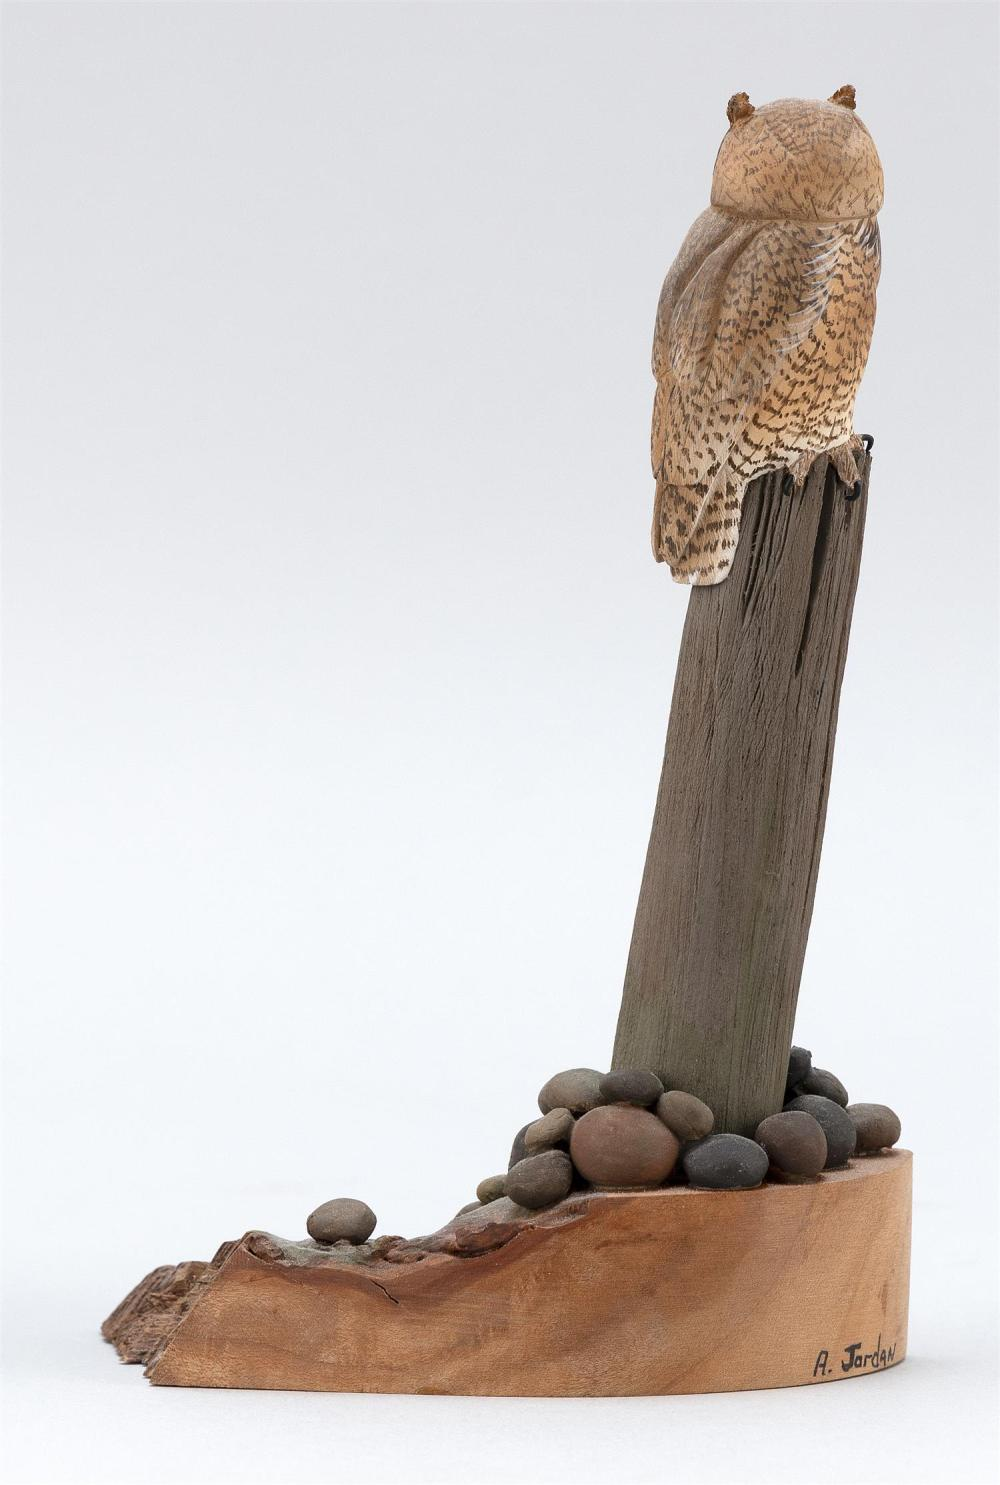 AL JORDAN MINIATURE GREAT HORNED OWL Mounted on a wooden rockery-style base. Signed on lower right of base